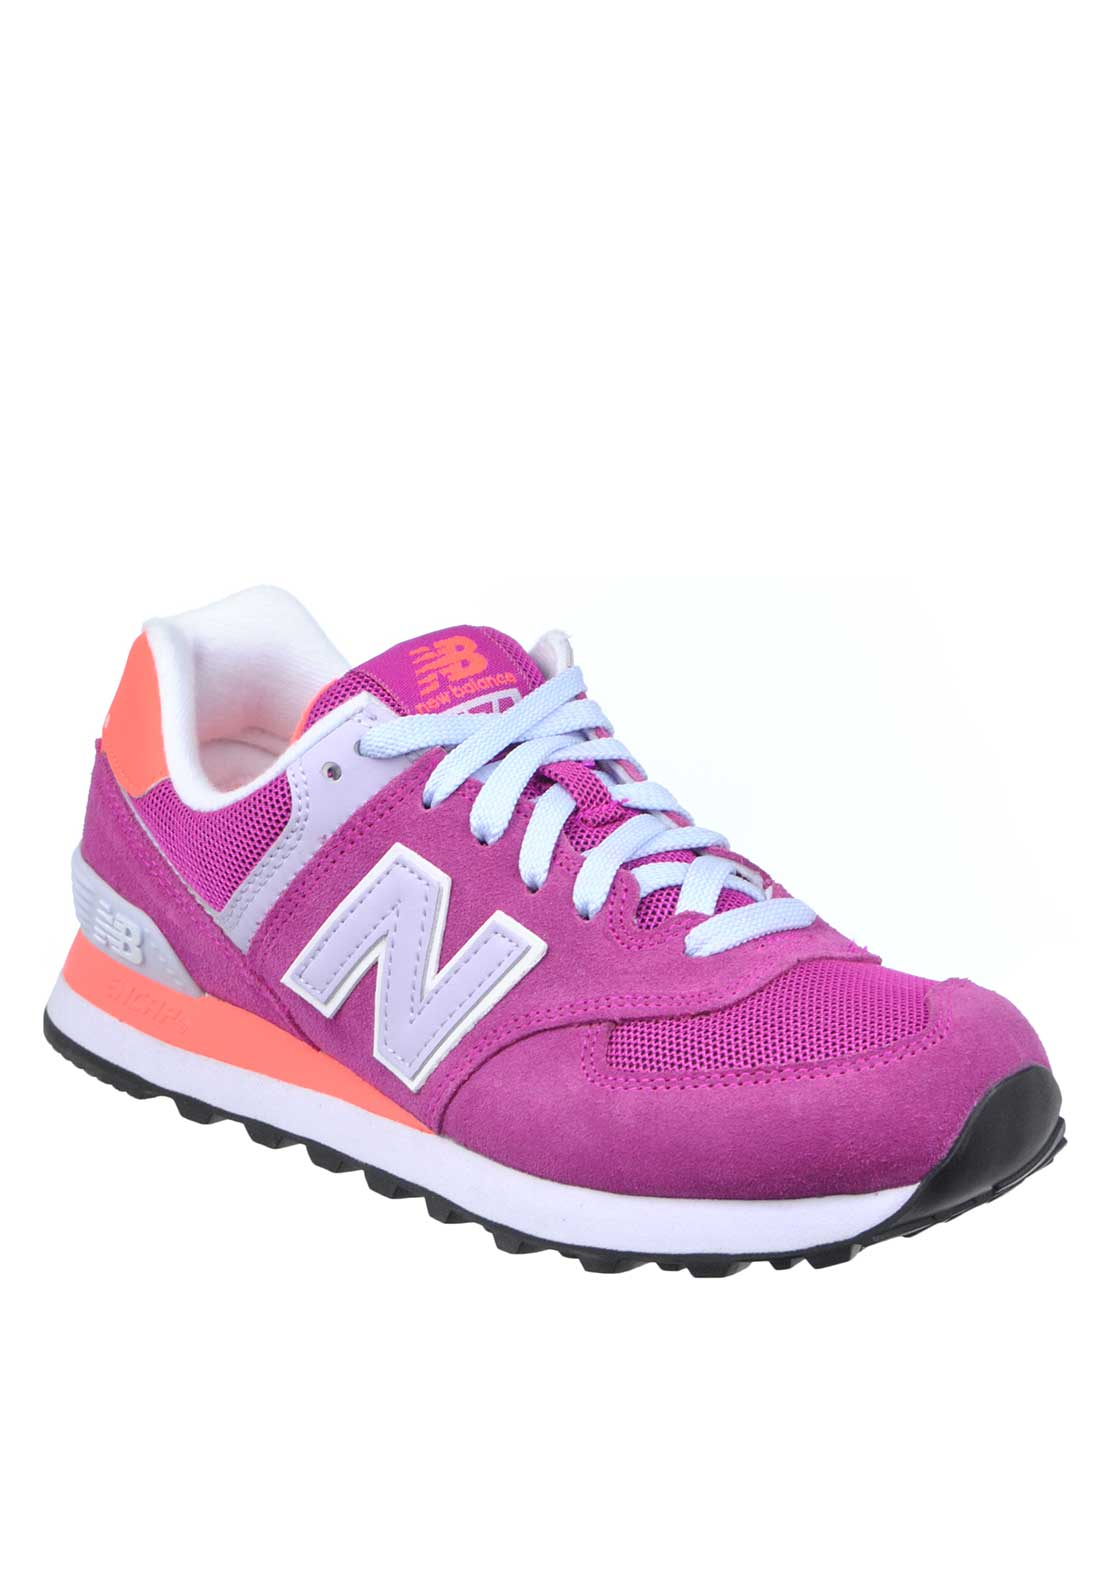 New Balance Womens 574 Fashion Runner, Purple